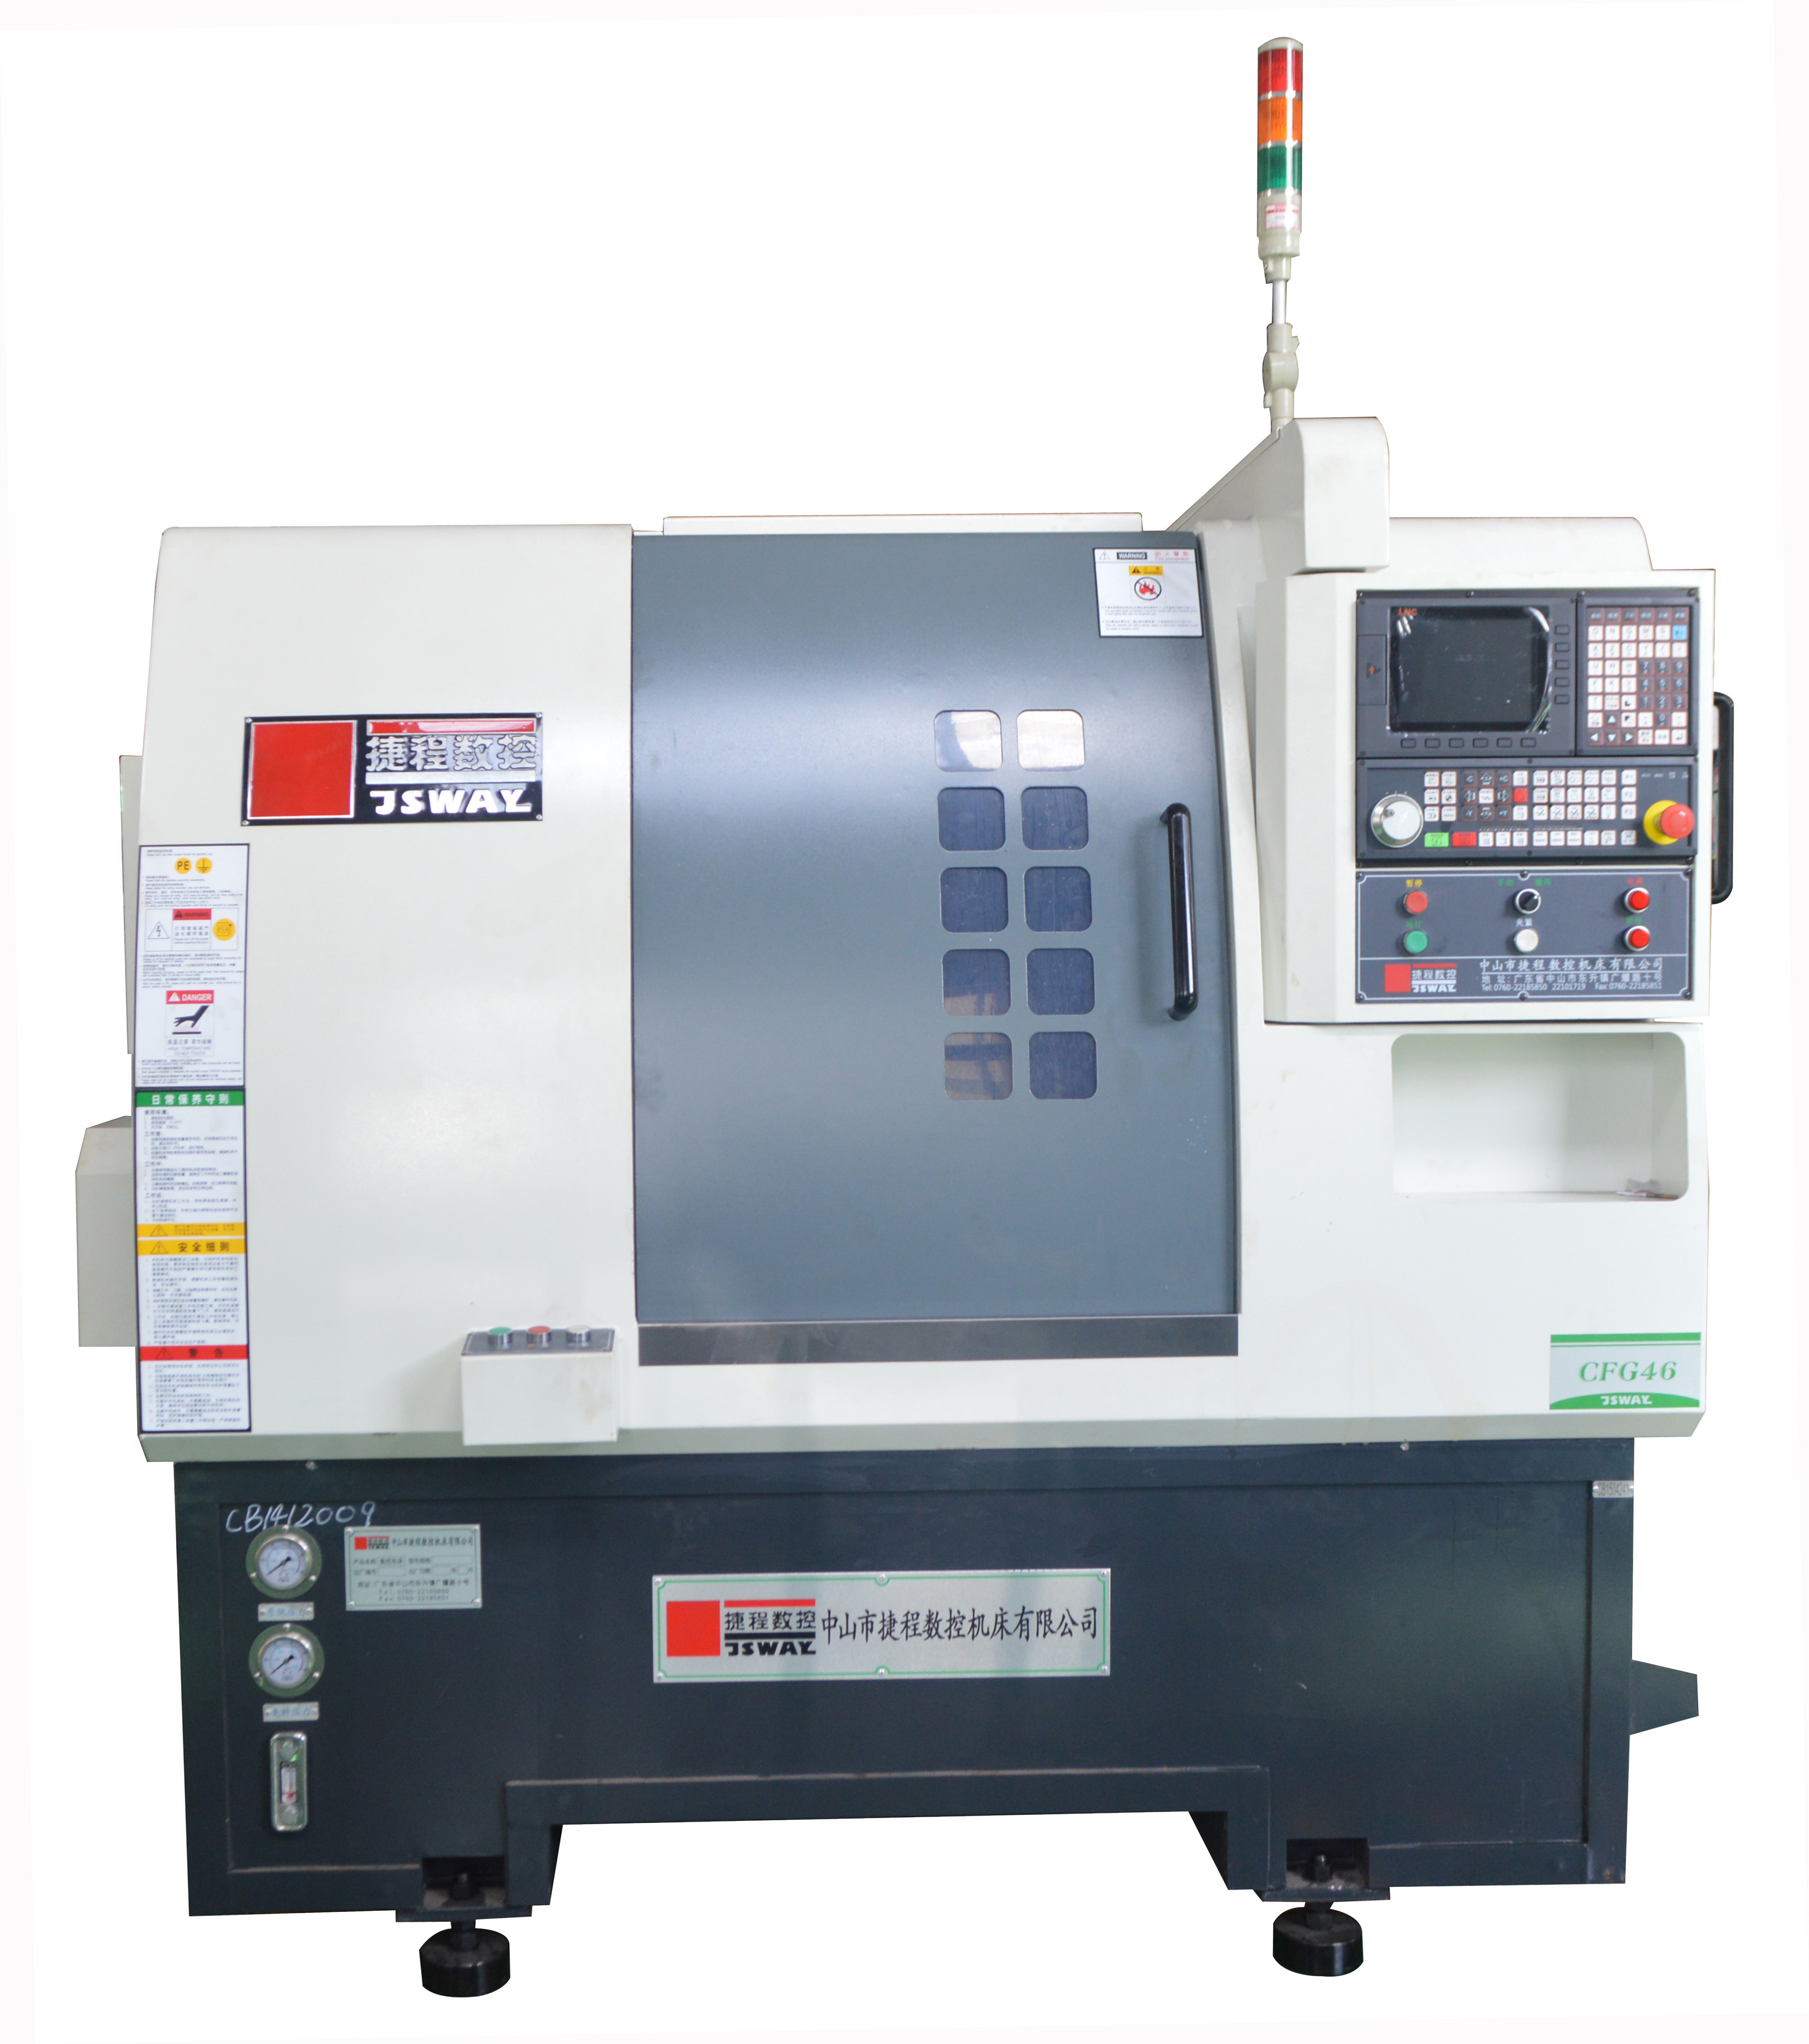 cnc lathe machine operation. cfg46 2-axis gang type cnc lathe machine operation